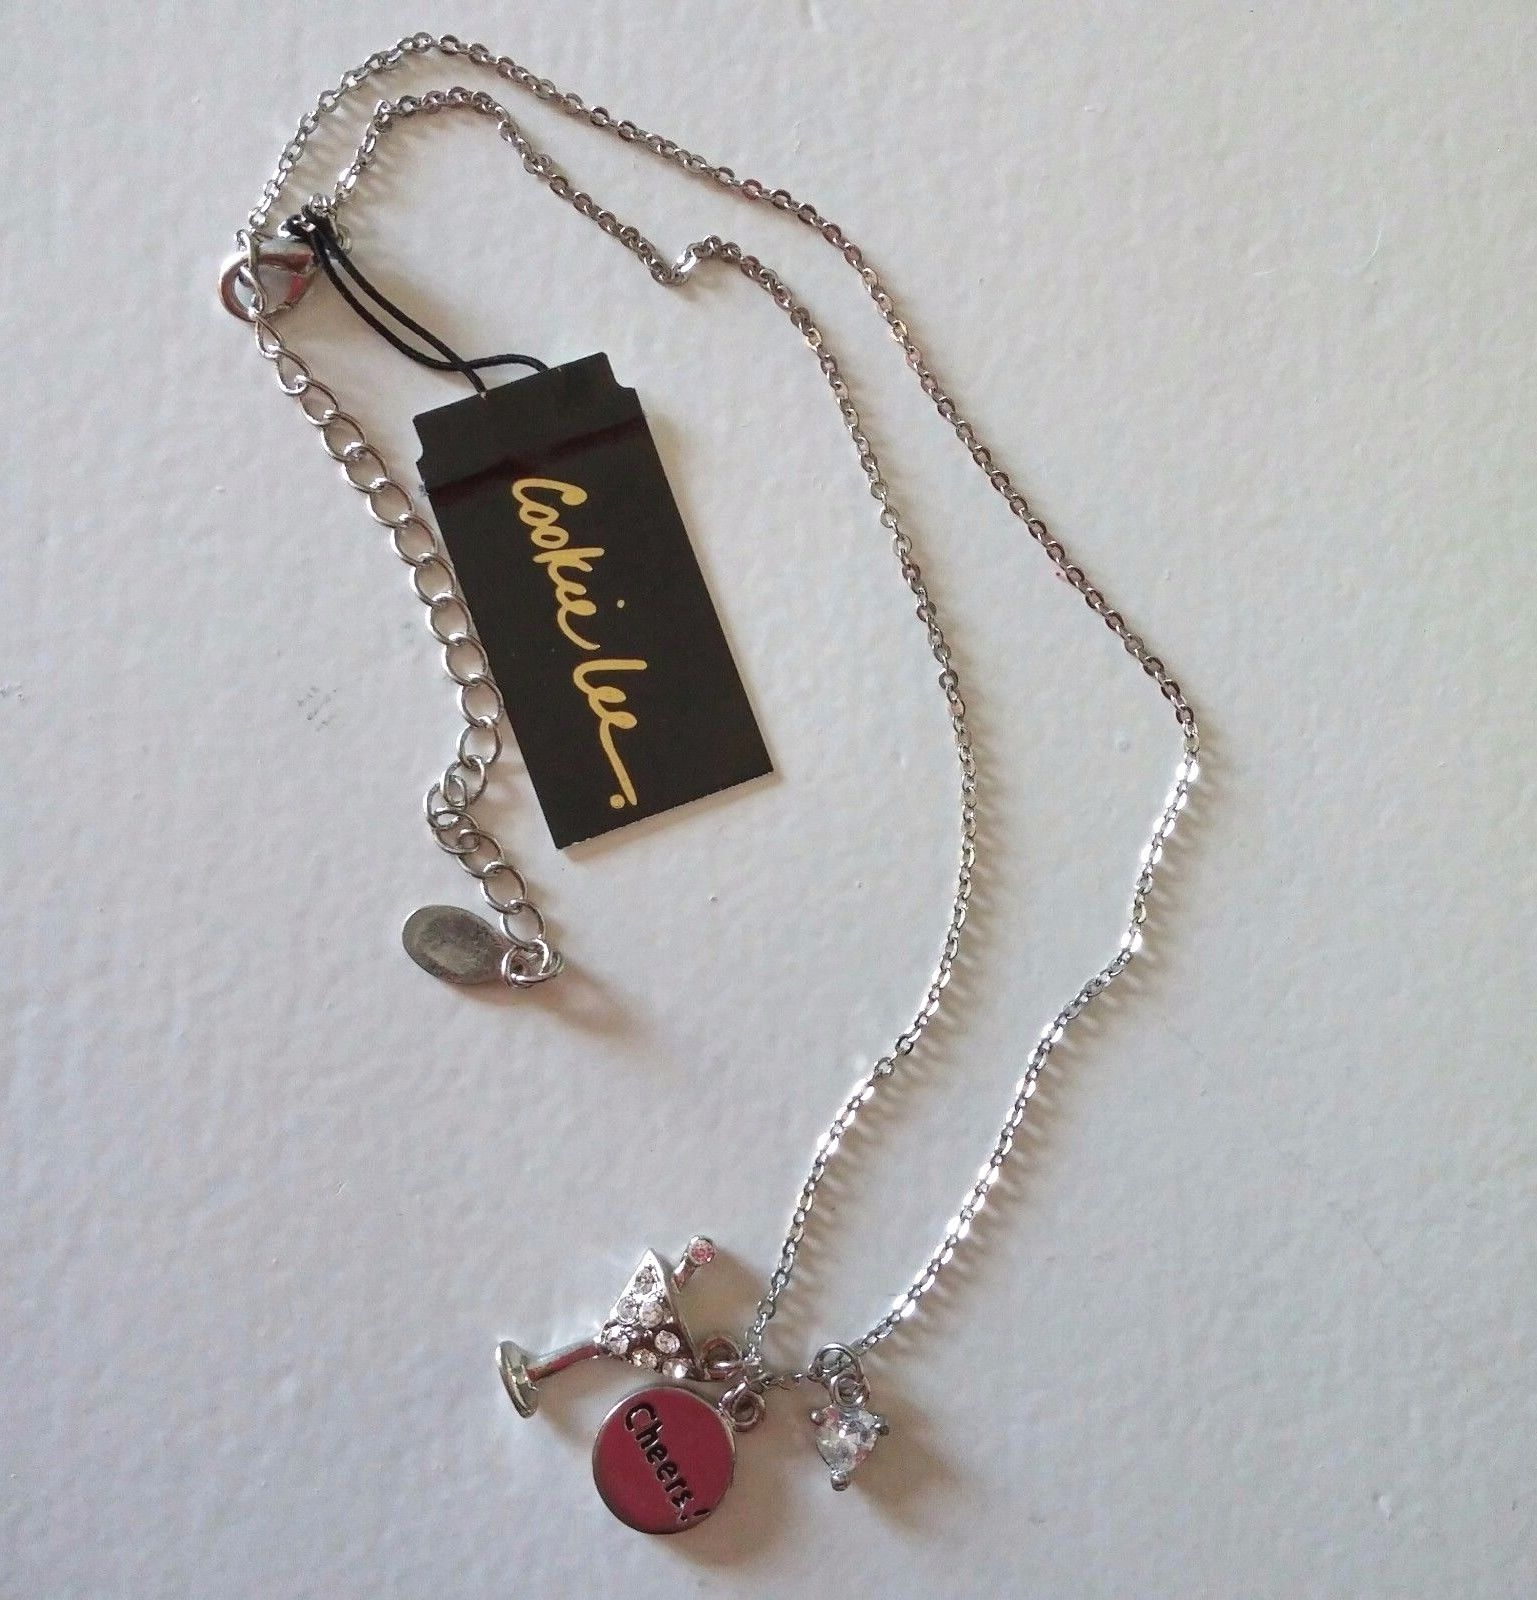 """Cookie Lee Necklace Genuine Crystal CZ Pendant Martini Cheers Charms 18"""""""